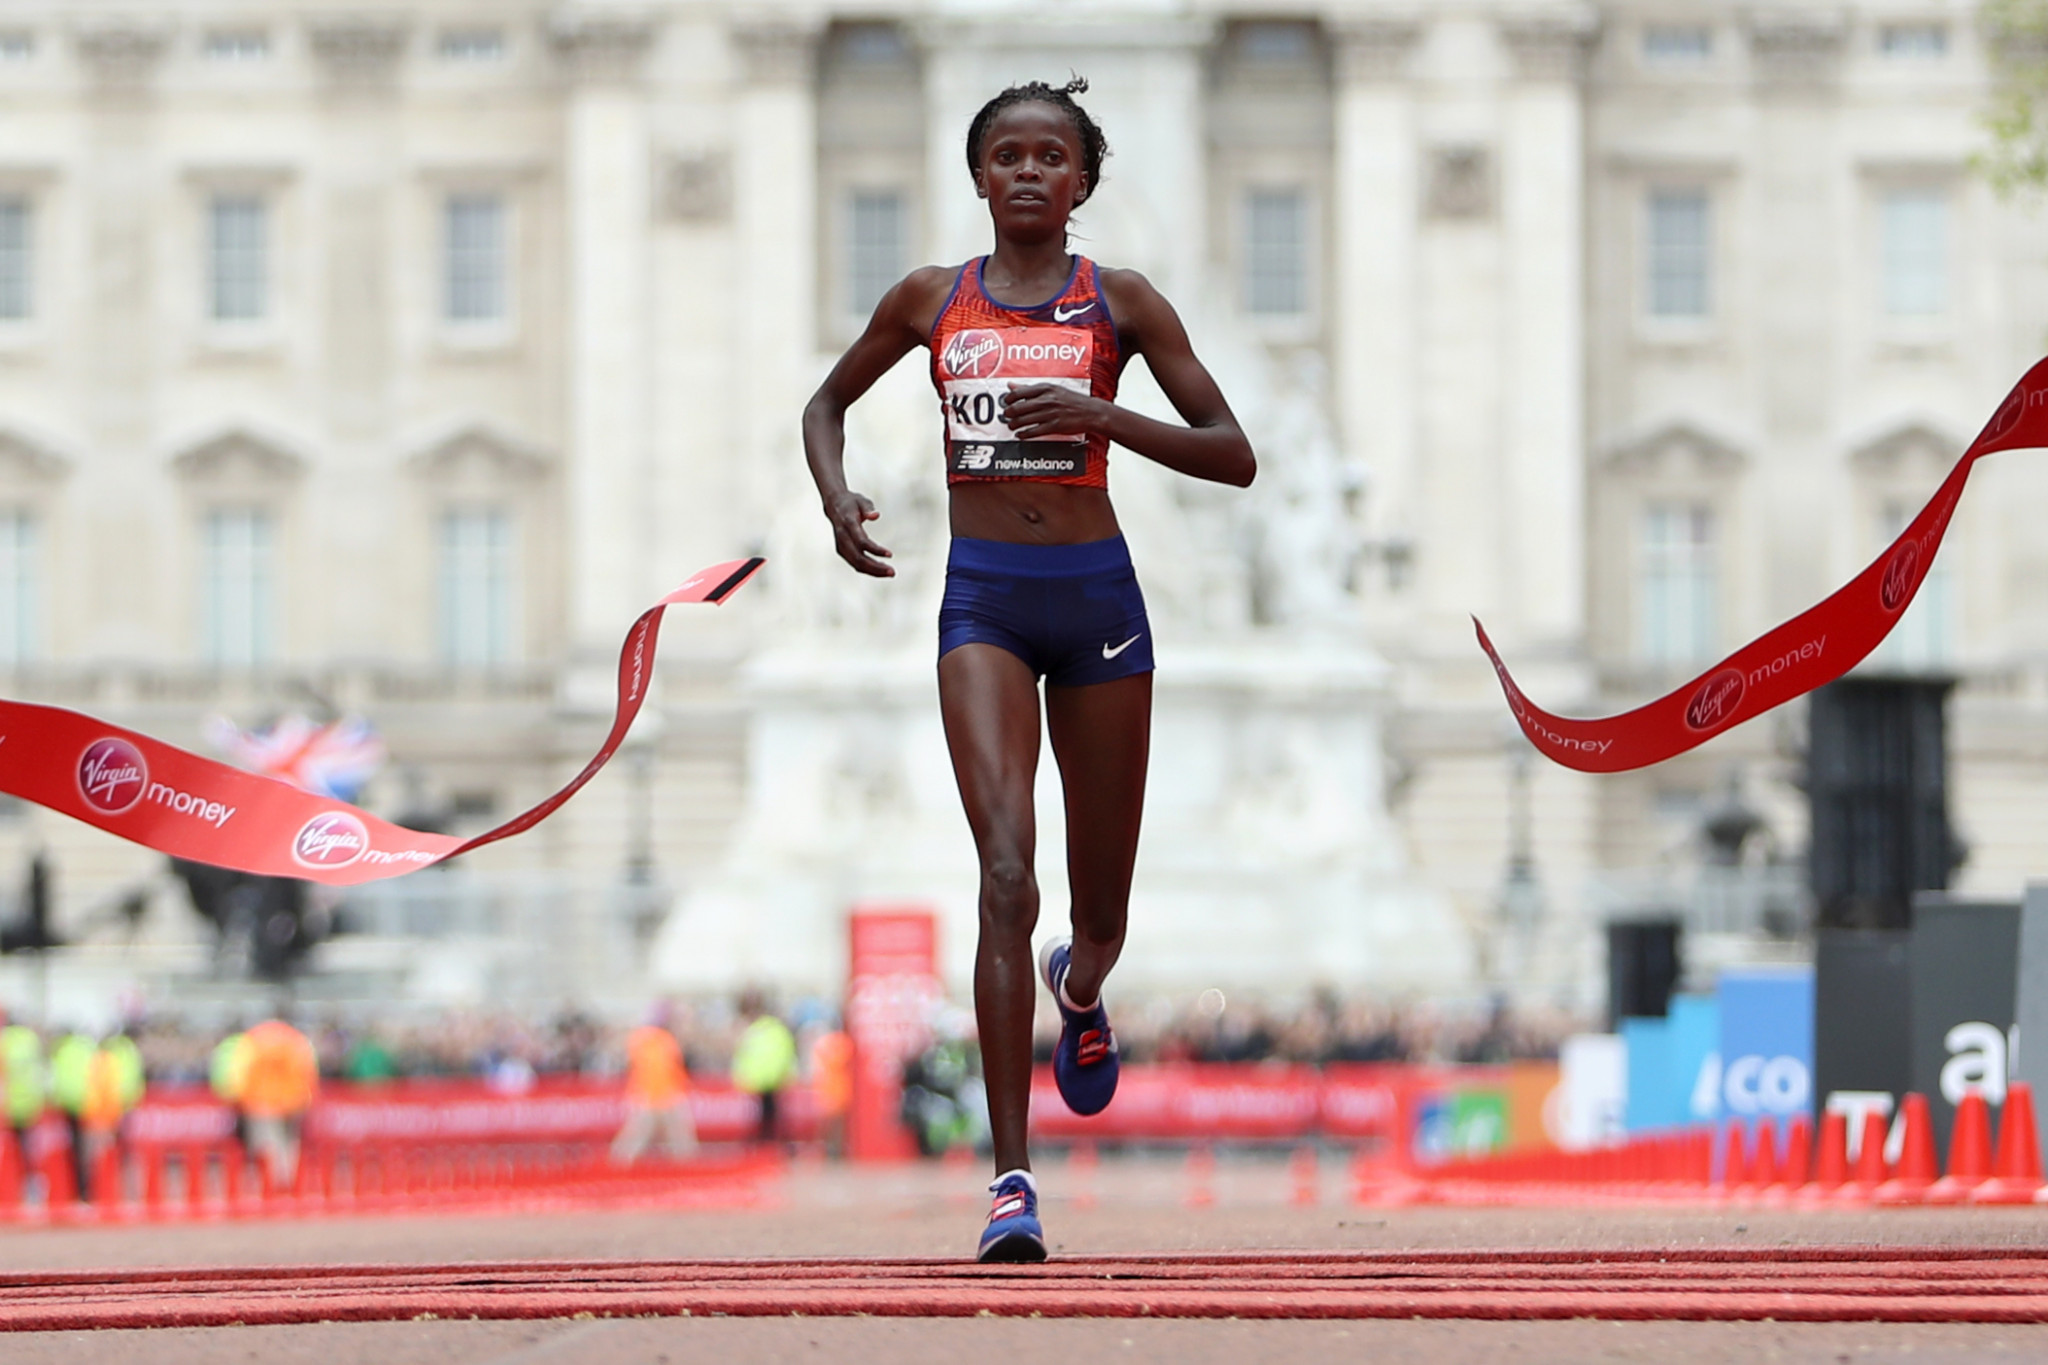 World record holder Kosgei to defend London Marathon title